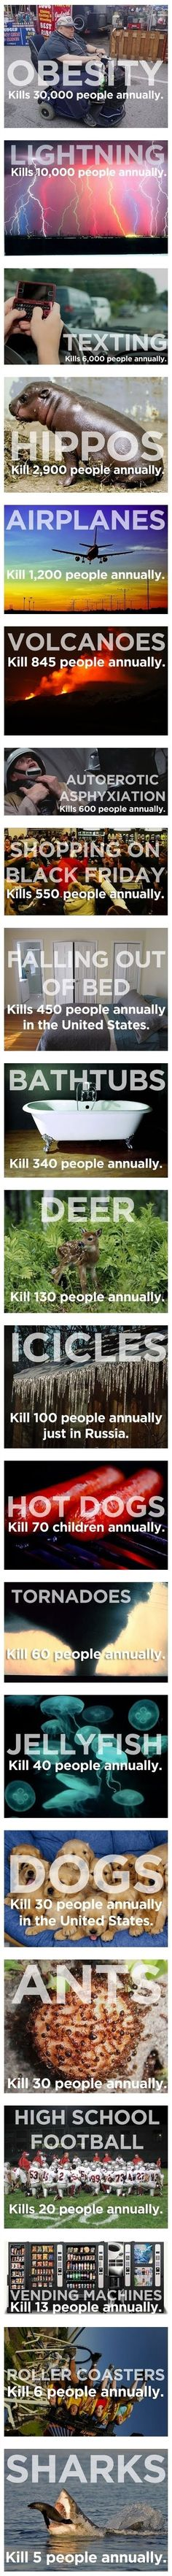 Things that kill more people than sharks. Dont know if any one it is true, but funny as hell none the less